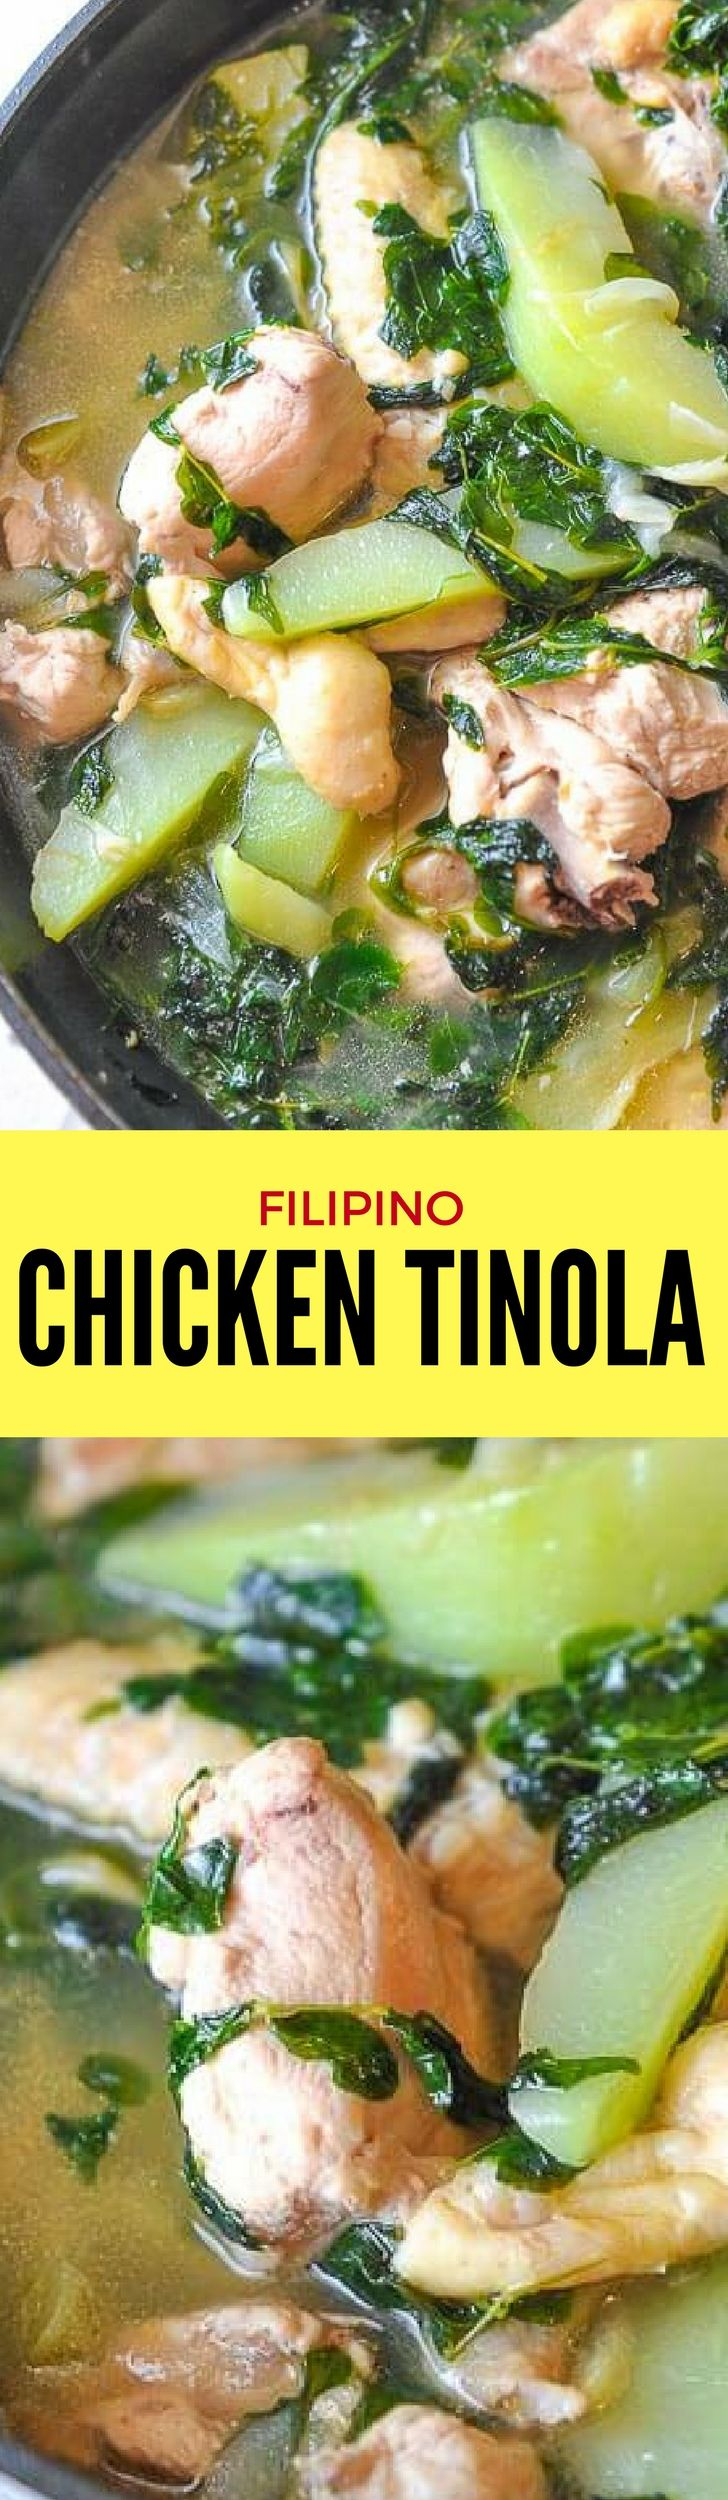 Asiatische Moringa Filipino Chicken Tinola Is A Type Of Chicken Soup In A Clear Broth